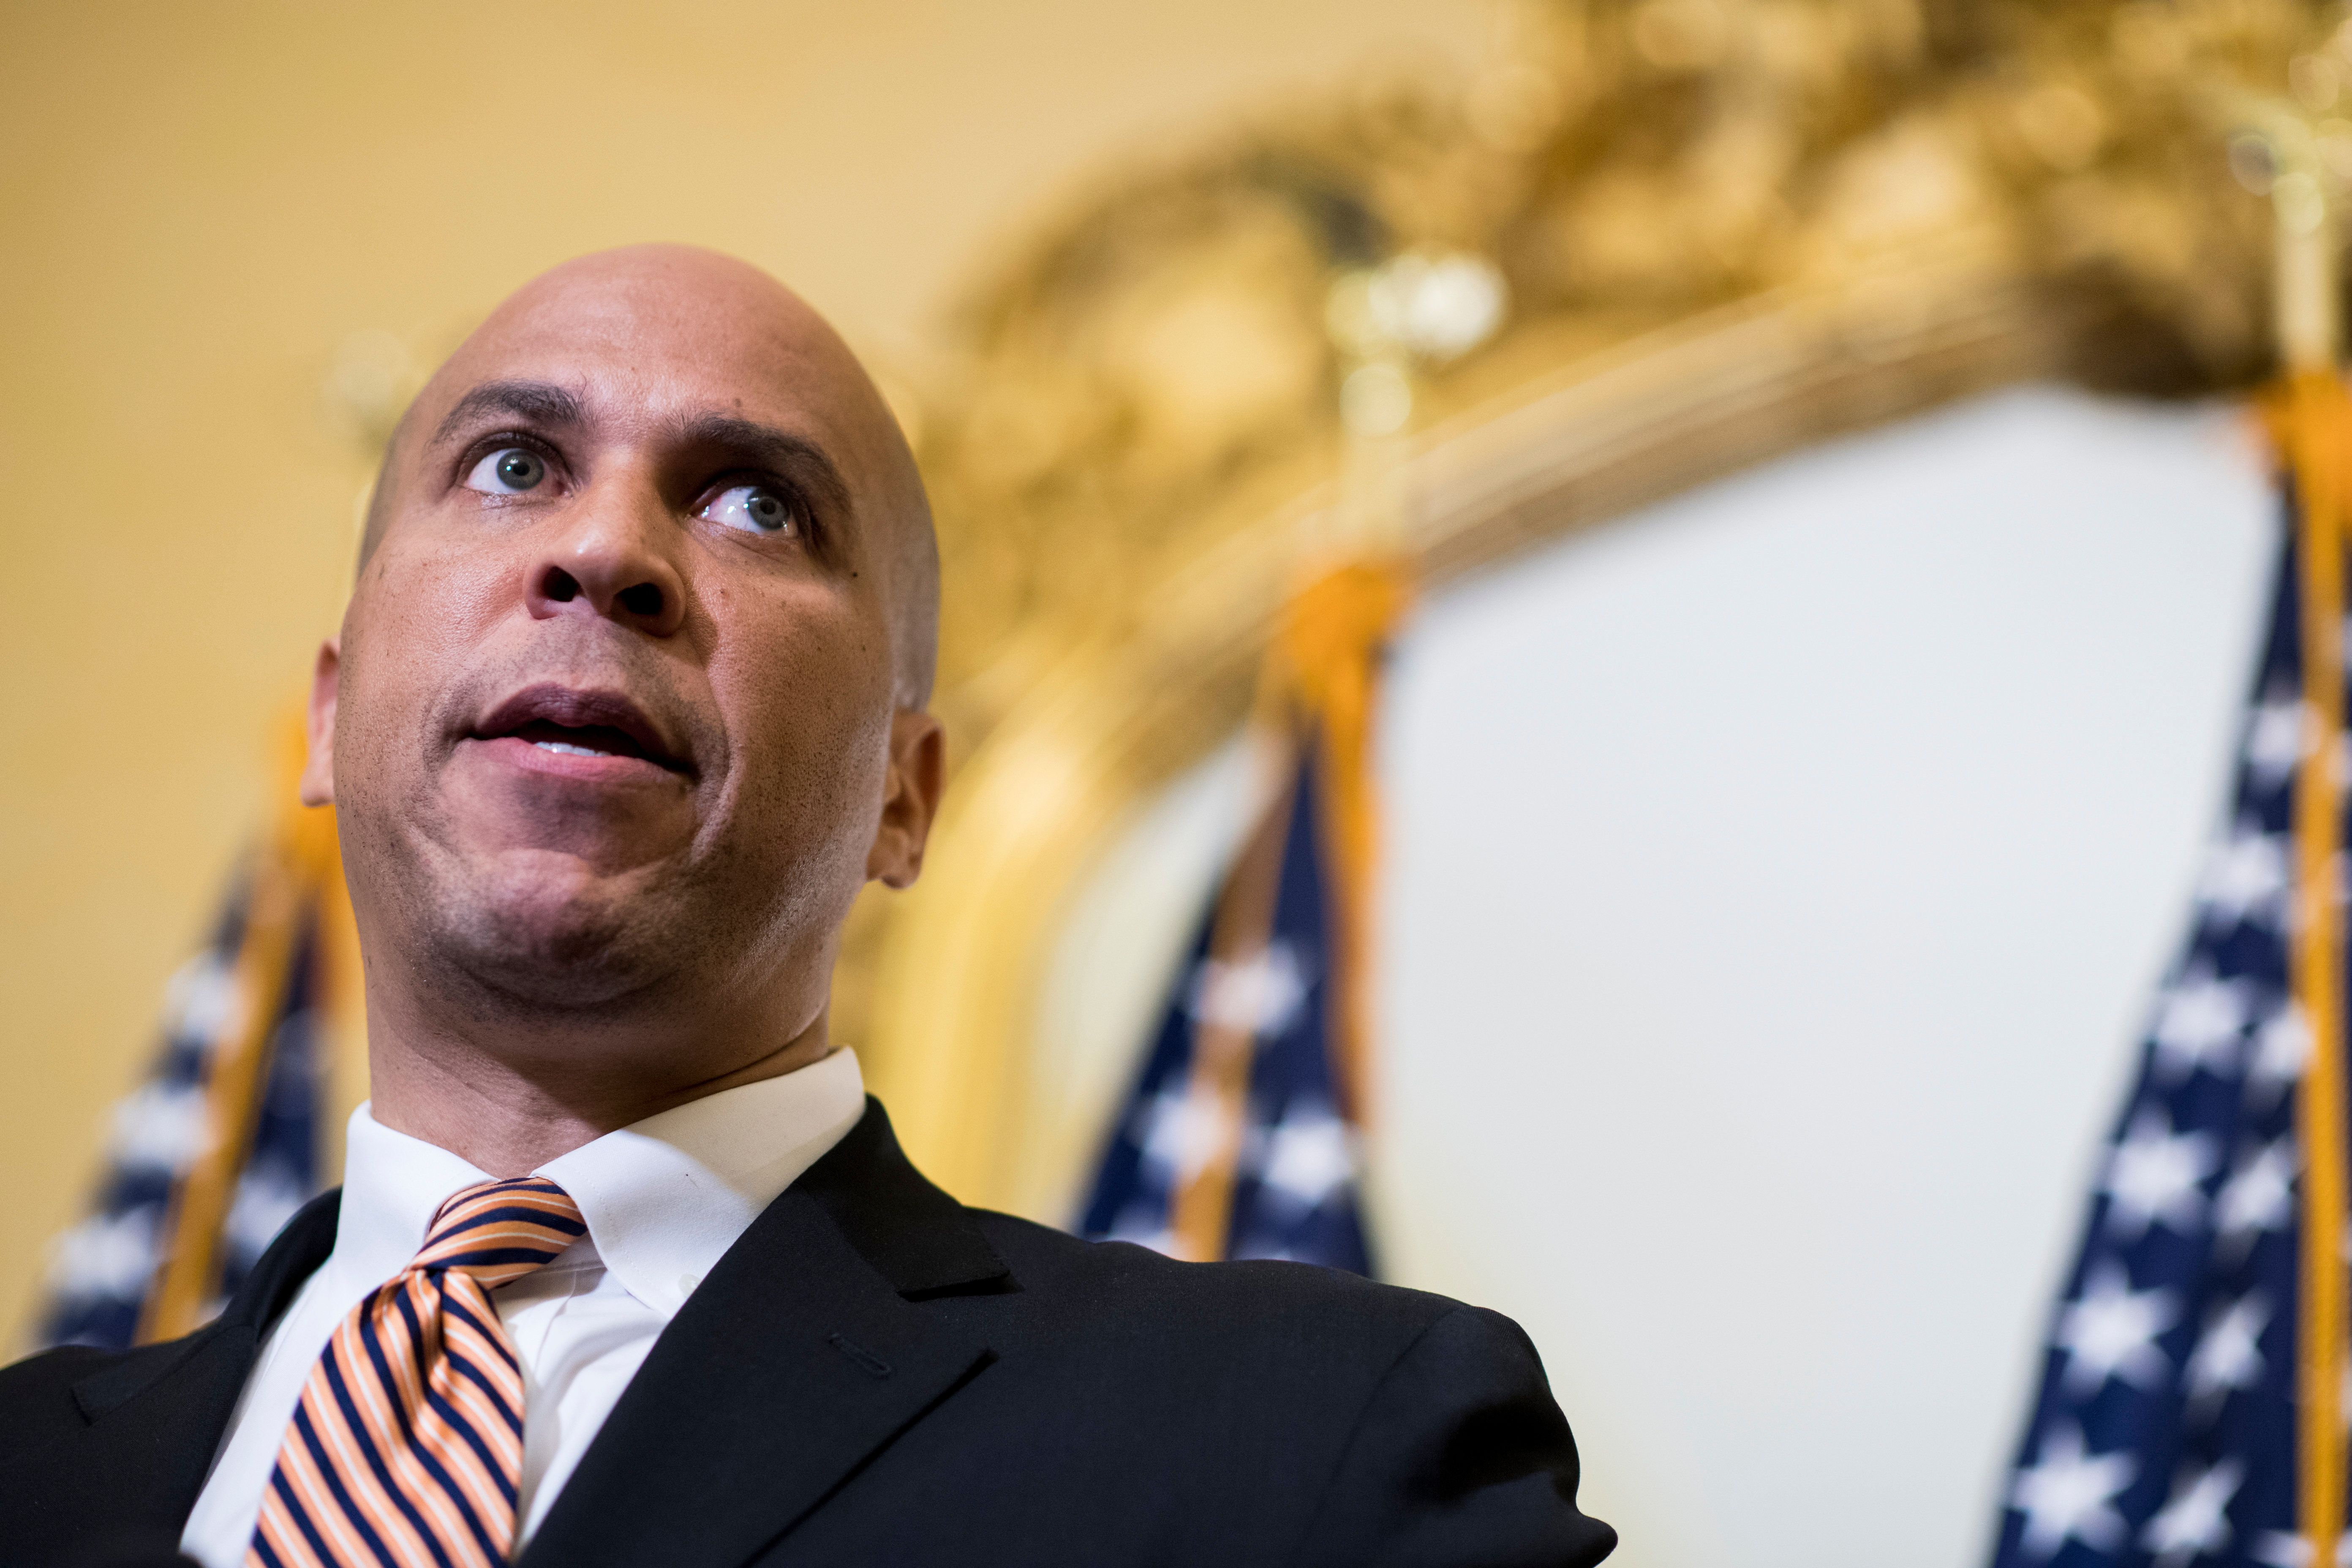 UNITED STATES - JULY 11: Sen. Cory Booker, D-N.J., speaks during the news conference in the Capitol to introduce the 'Dignity for Incarcerated Women Act' on Tuesday, July 11, 2017. (Photo By Bill Clark/CQ Roll Call)